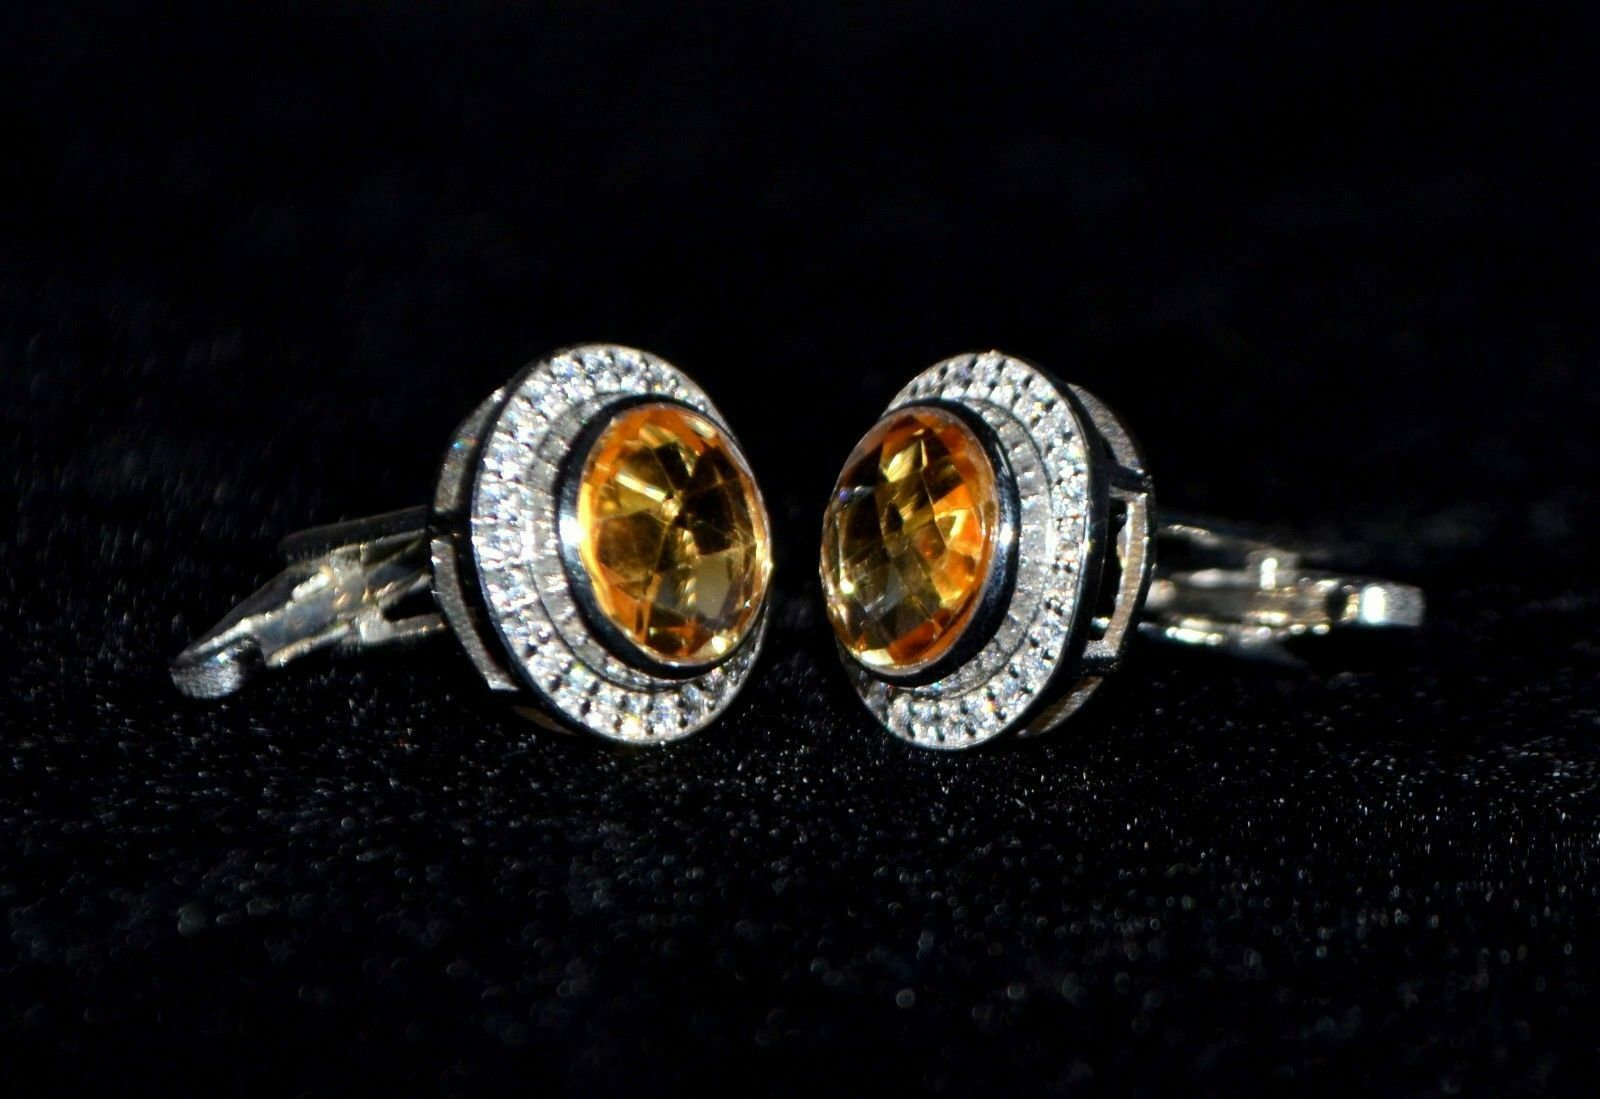 925 Sterling Silver Natural Fine Quality Citrine And Cz Gemstone Artistic Design